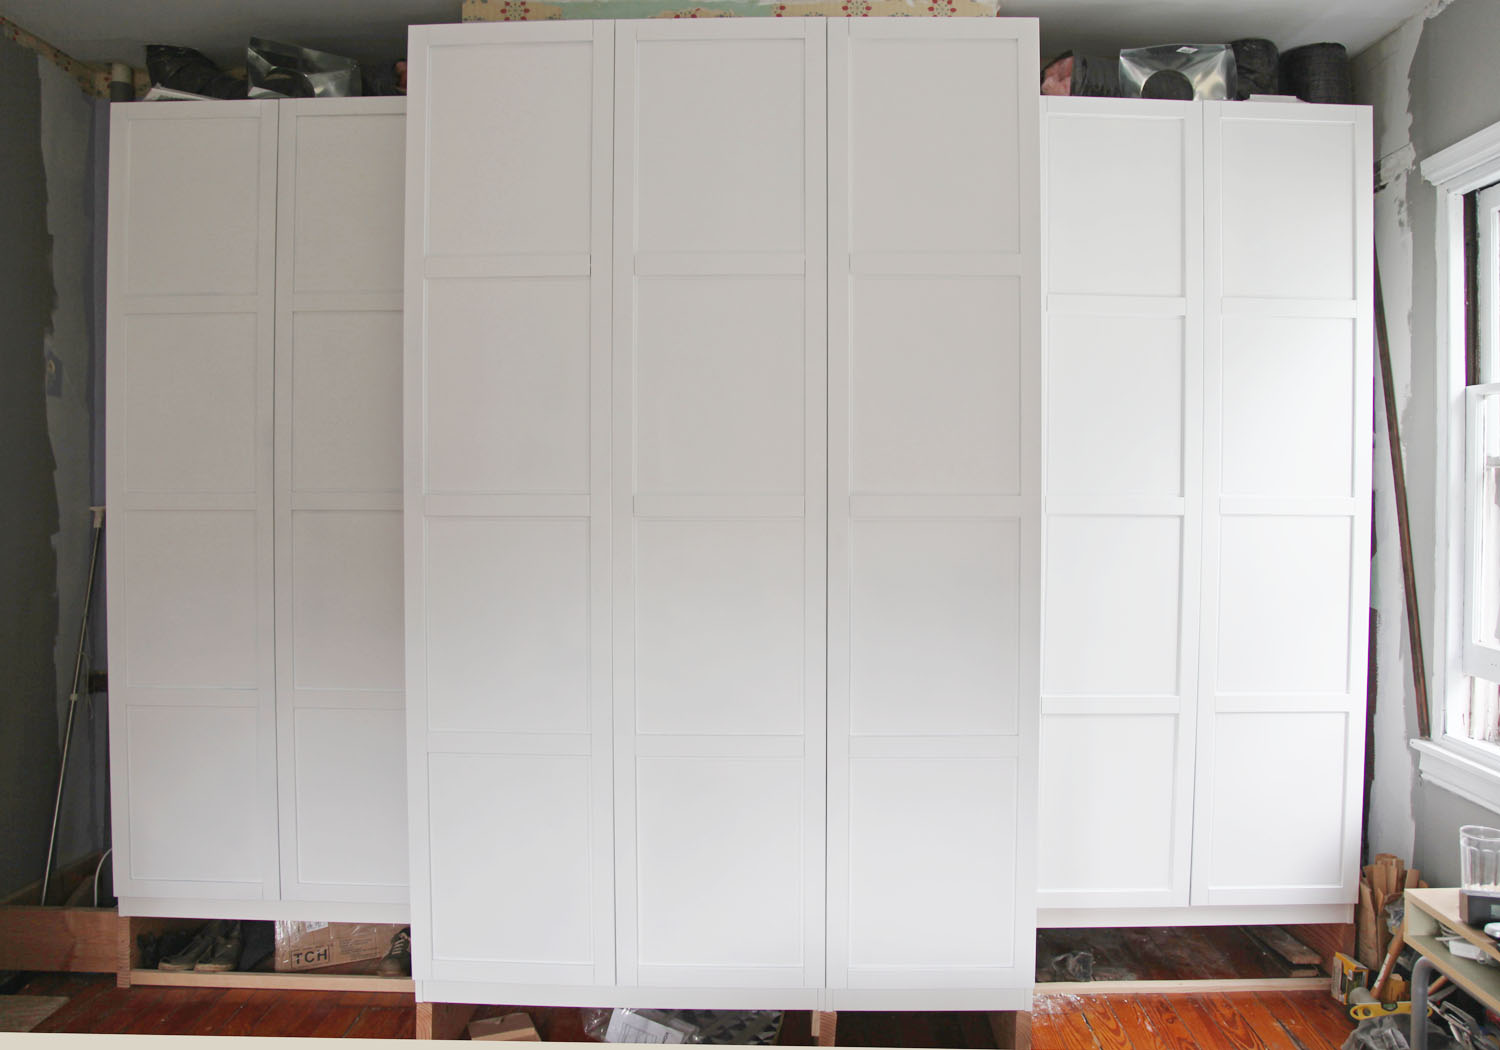 Ikea Wardrobe Leaning To One Side Bedroom Stately Kitsch